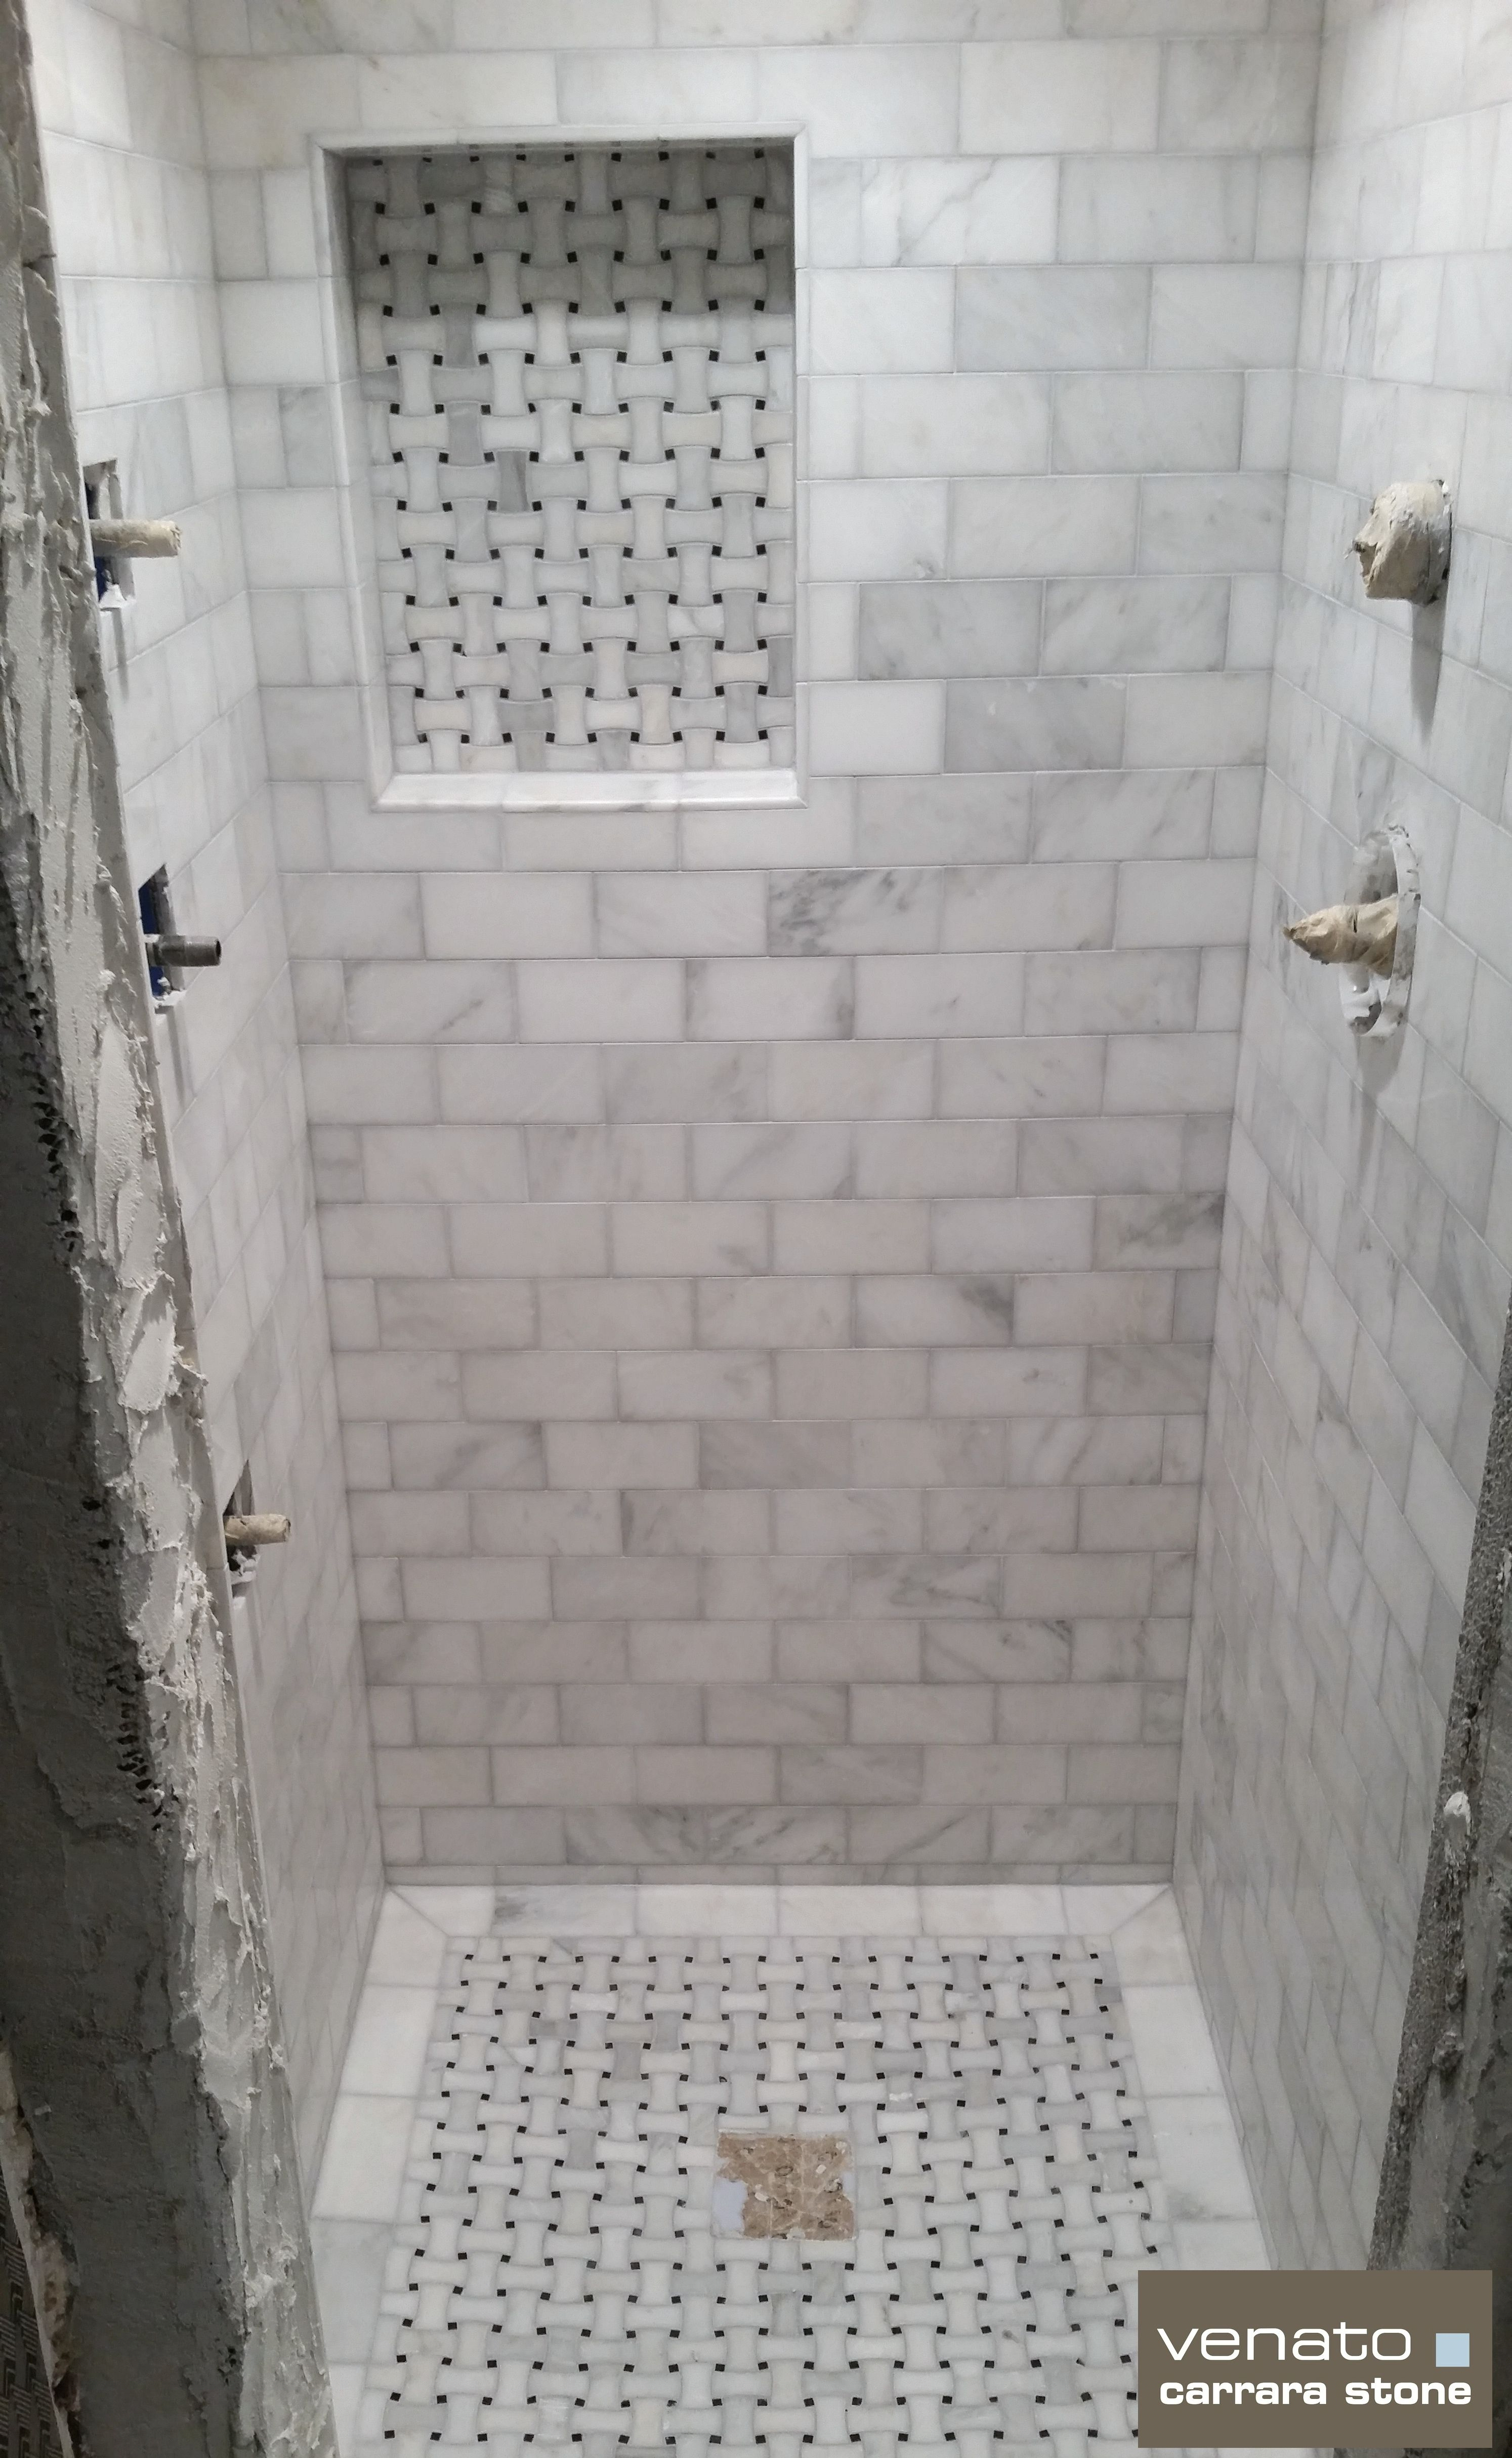 Carrara Venato Shower With Dogbone Basketweave Basketweave Tile Bathroom Shower Floor Bathroom Shower Tile